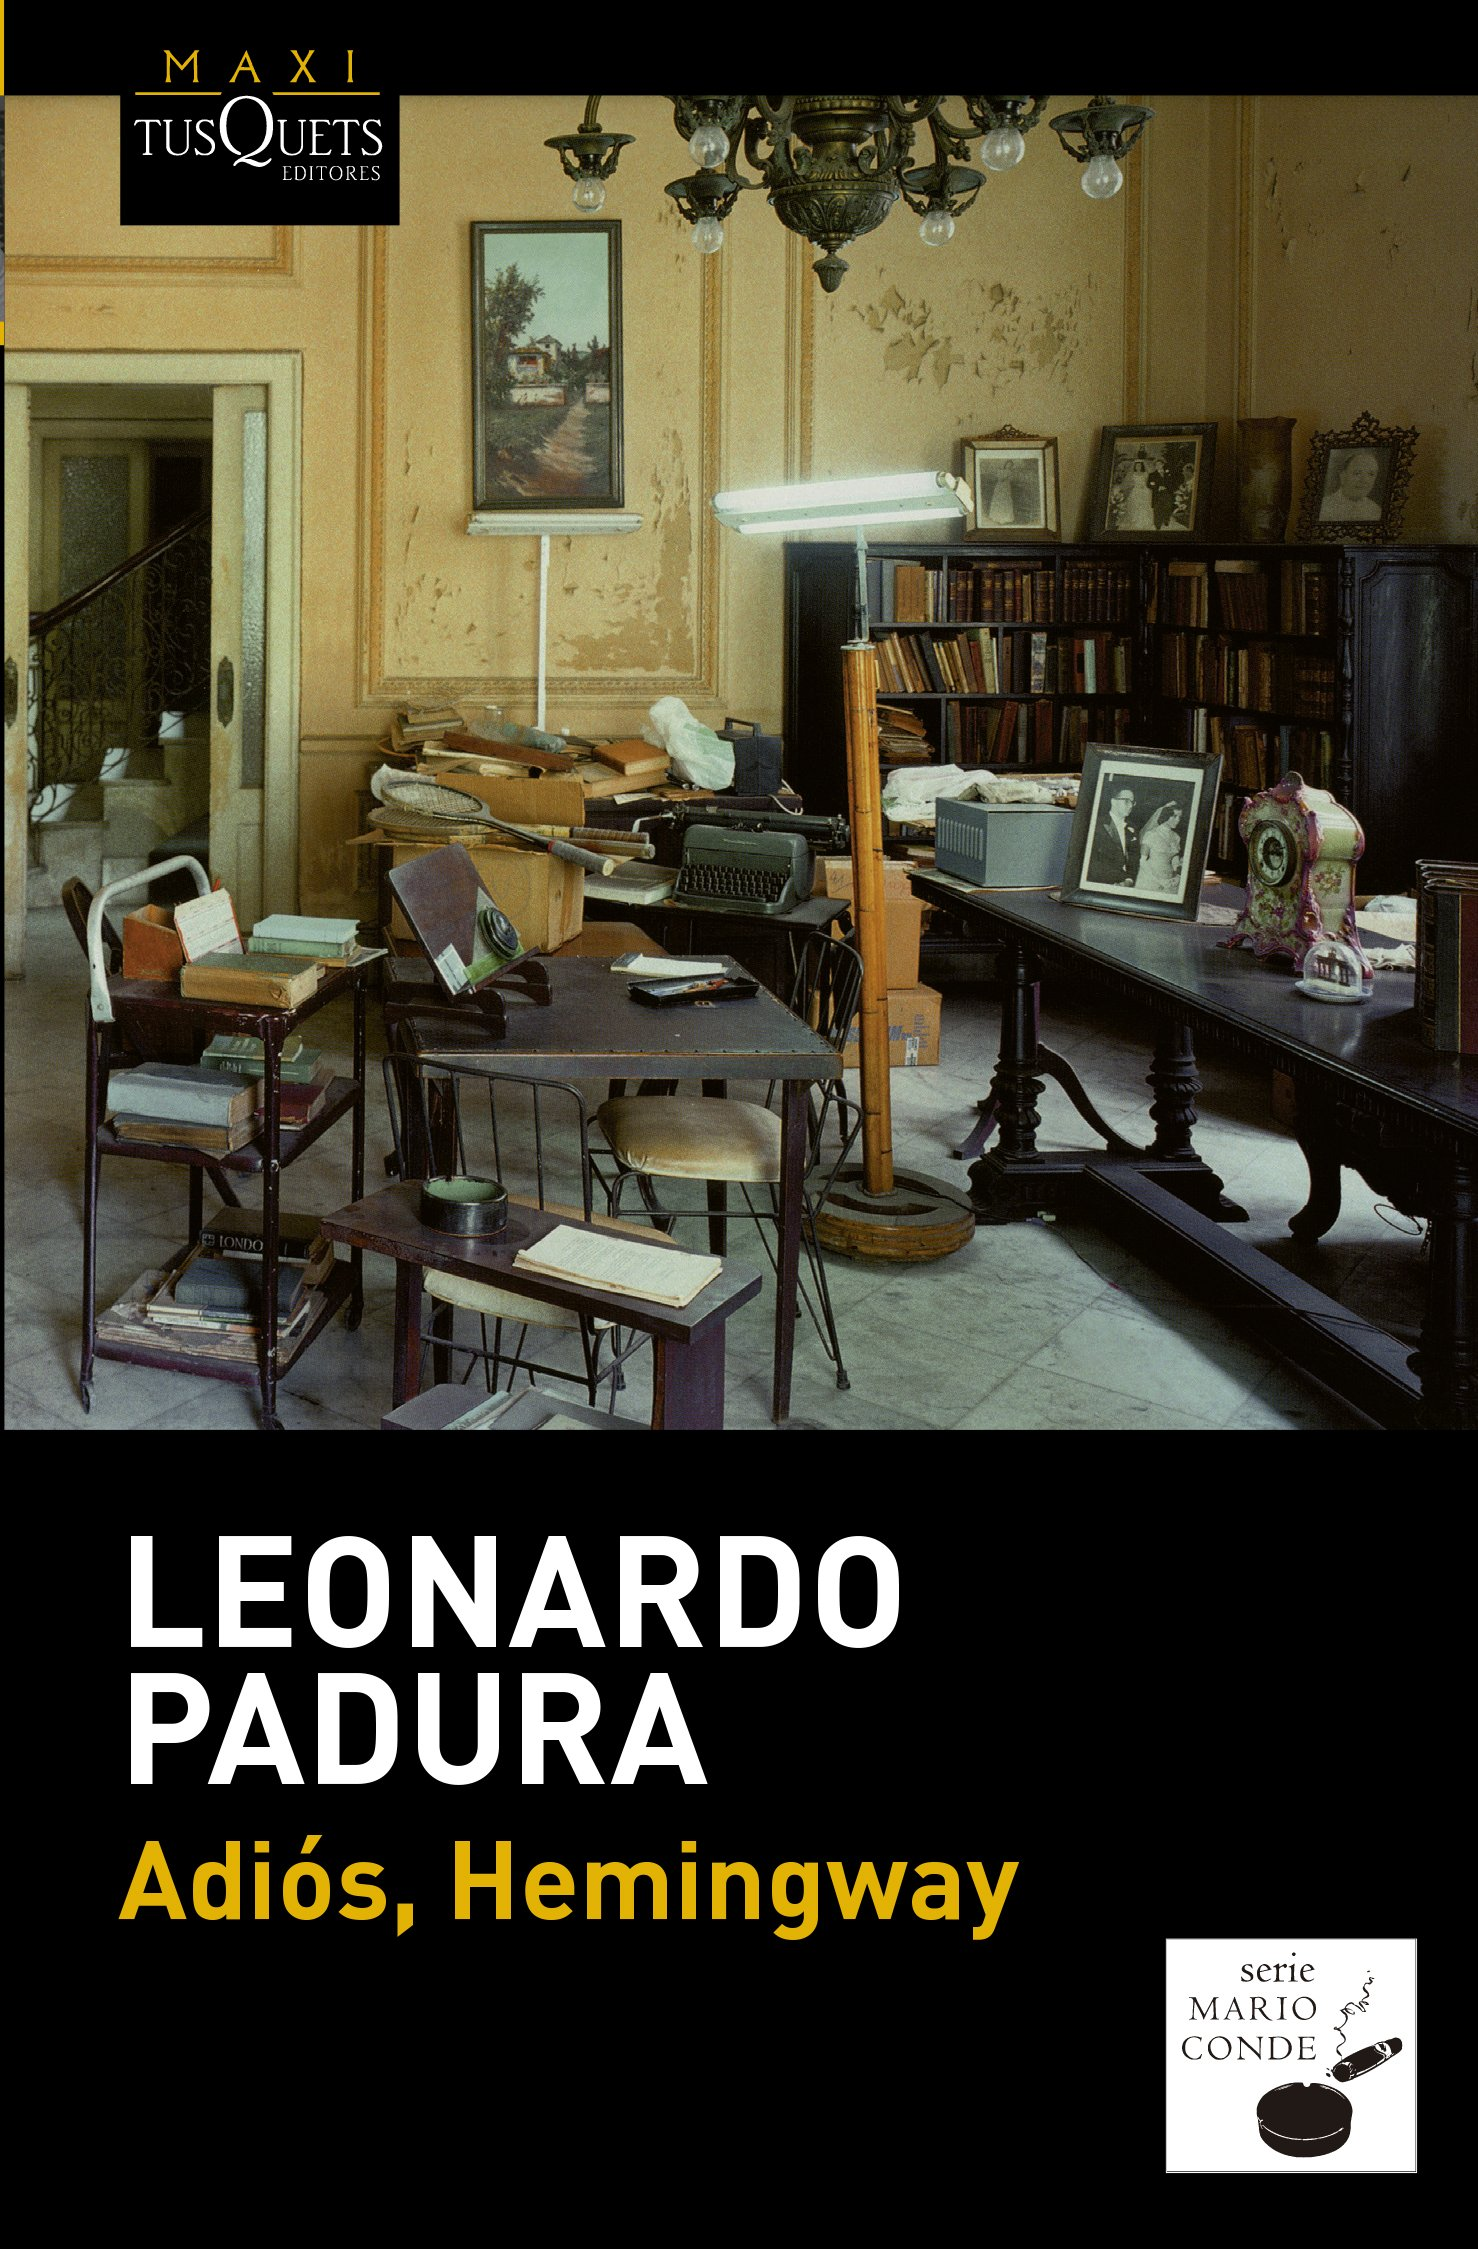 Adios, Hemingway (Spanish Edition): Leonardo Padura: 9788483839089: Amazon.com: Books